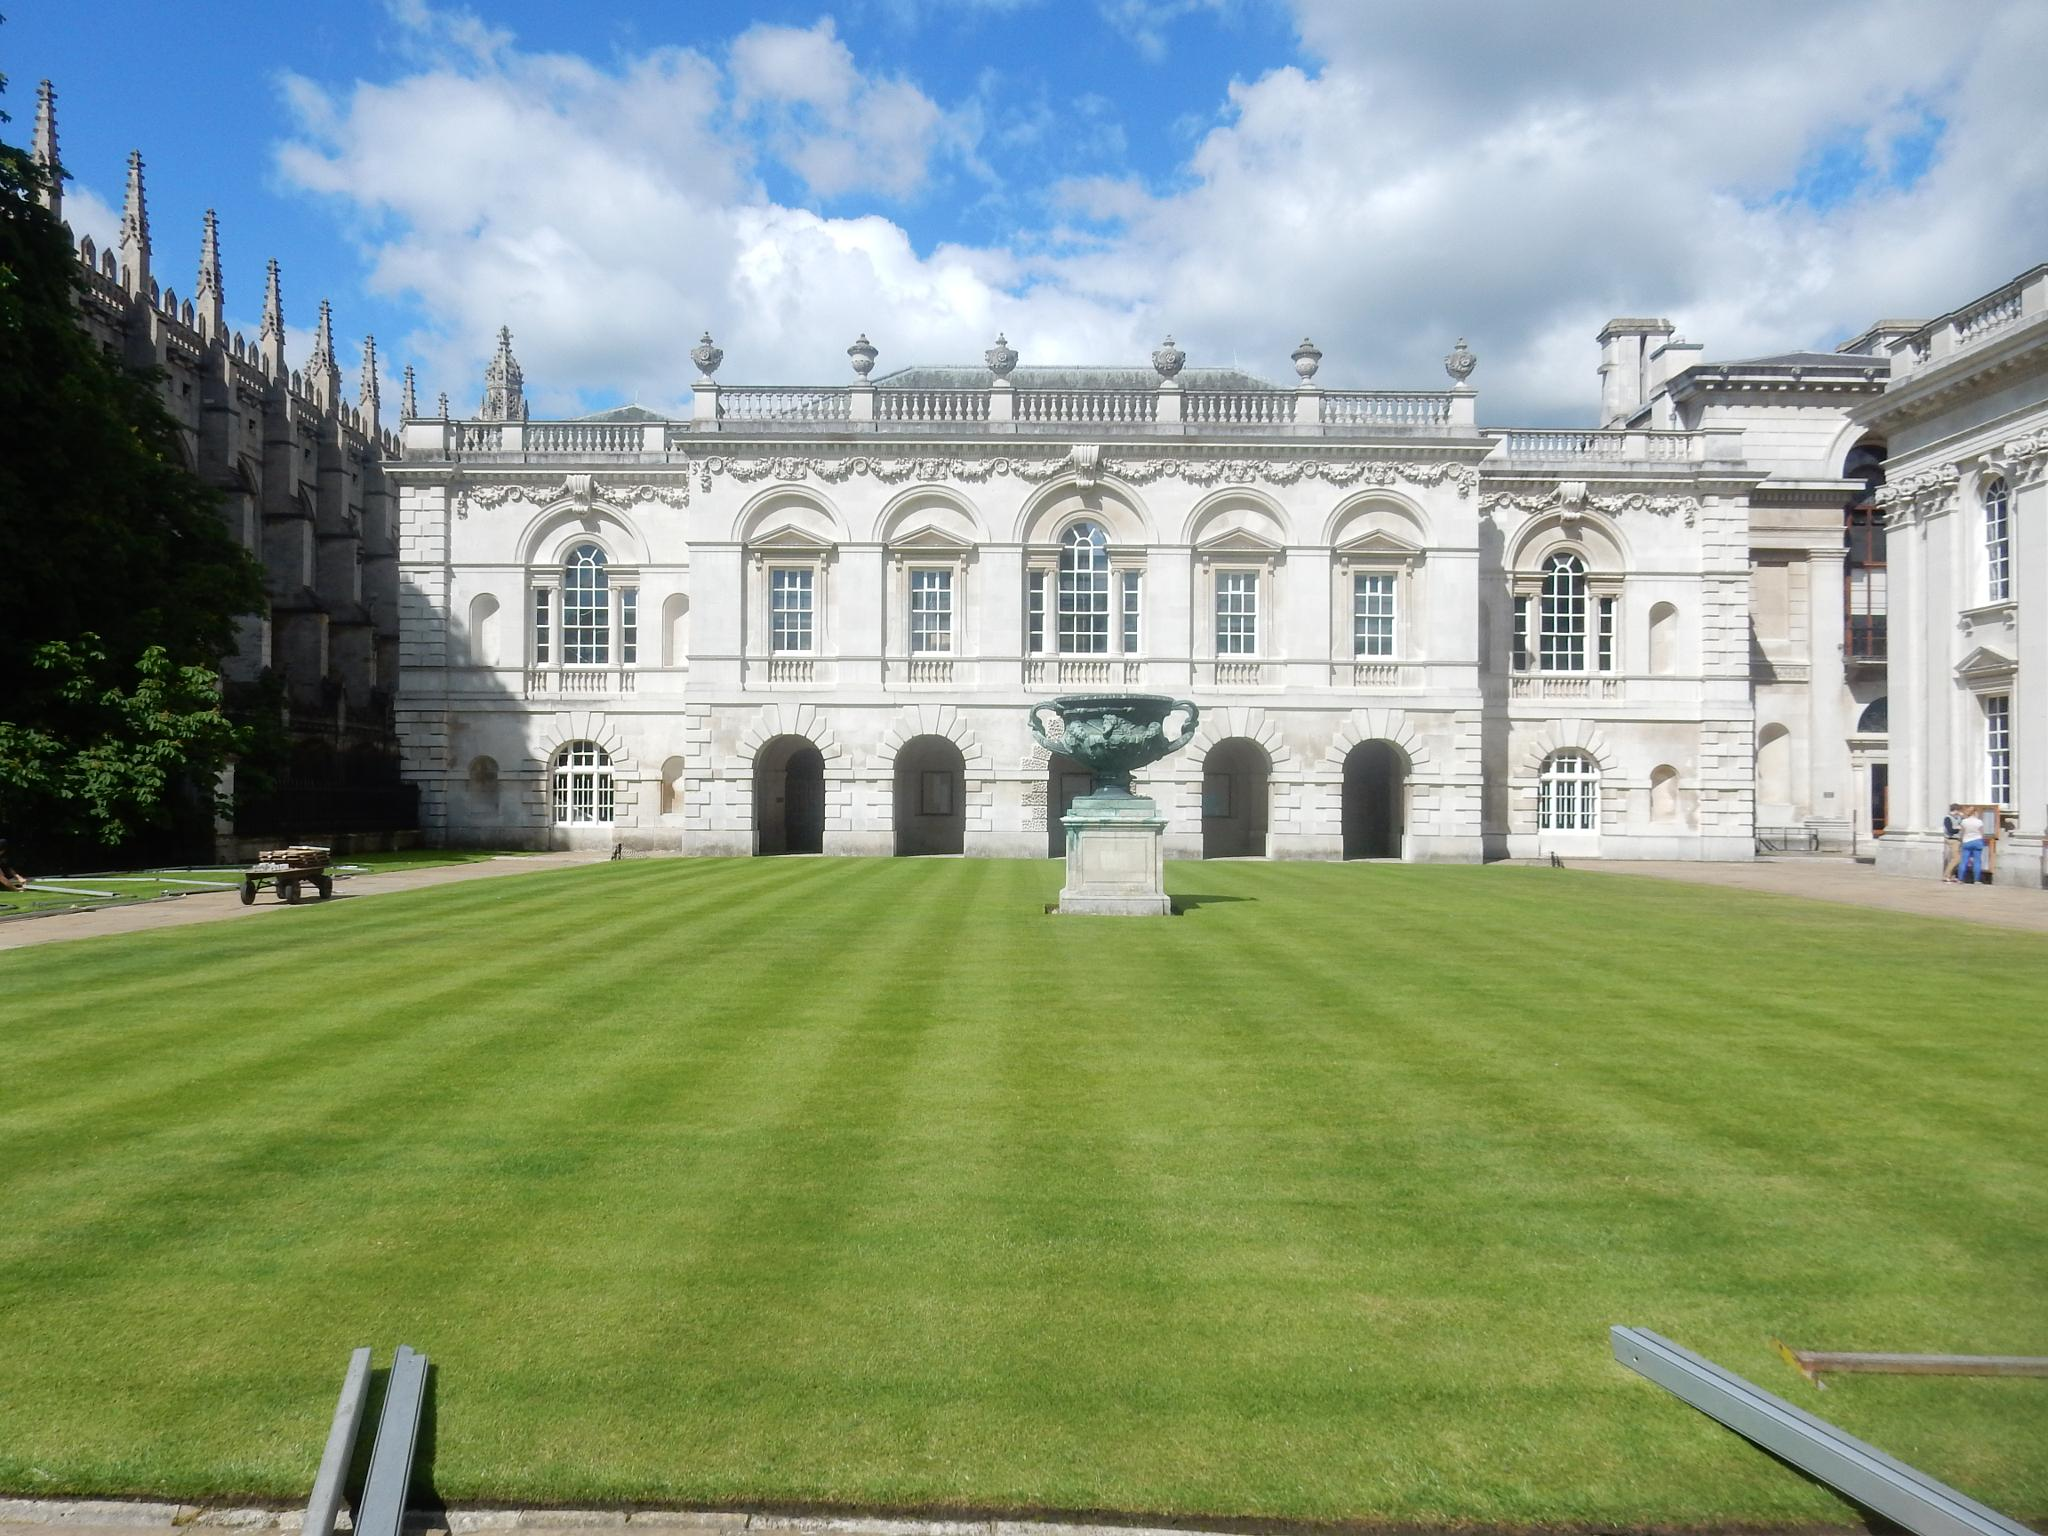 Kings College by Simon Hill